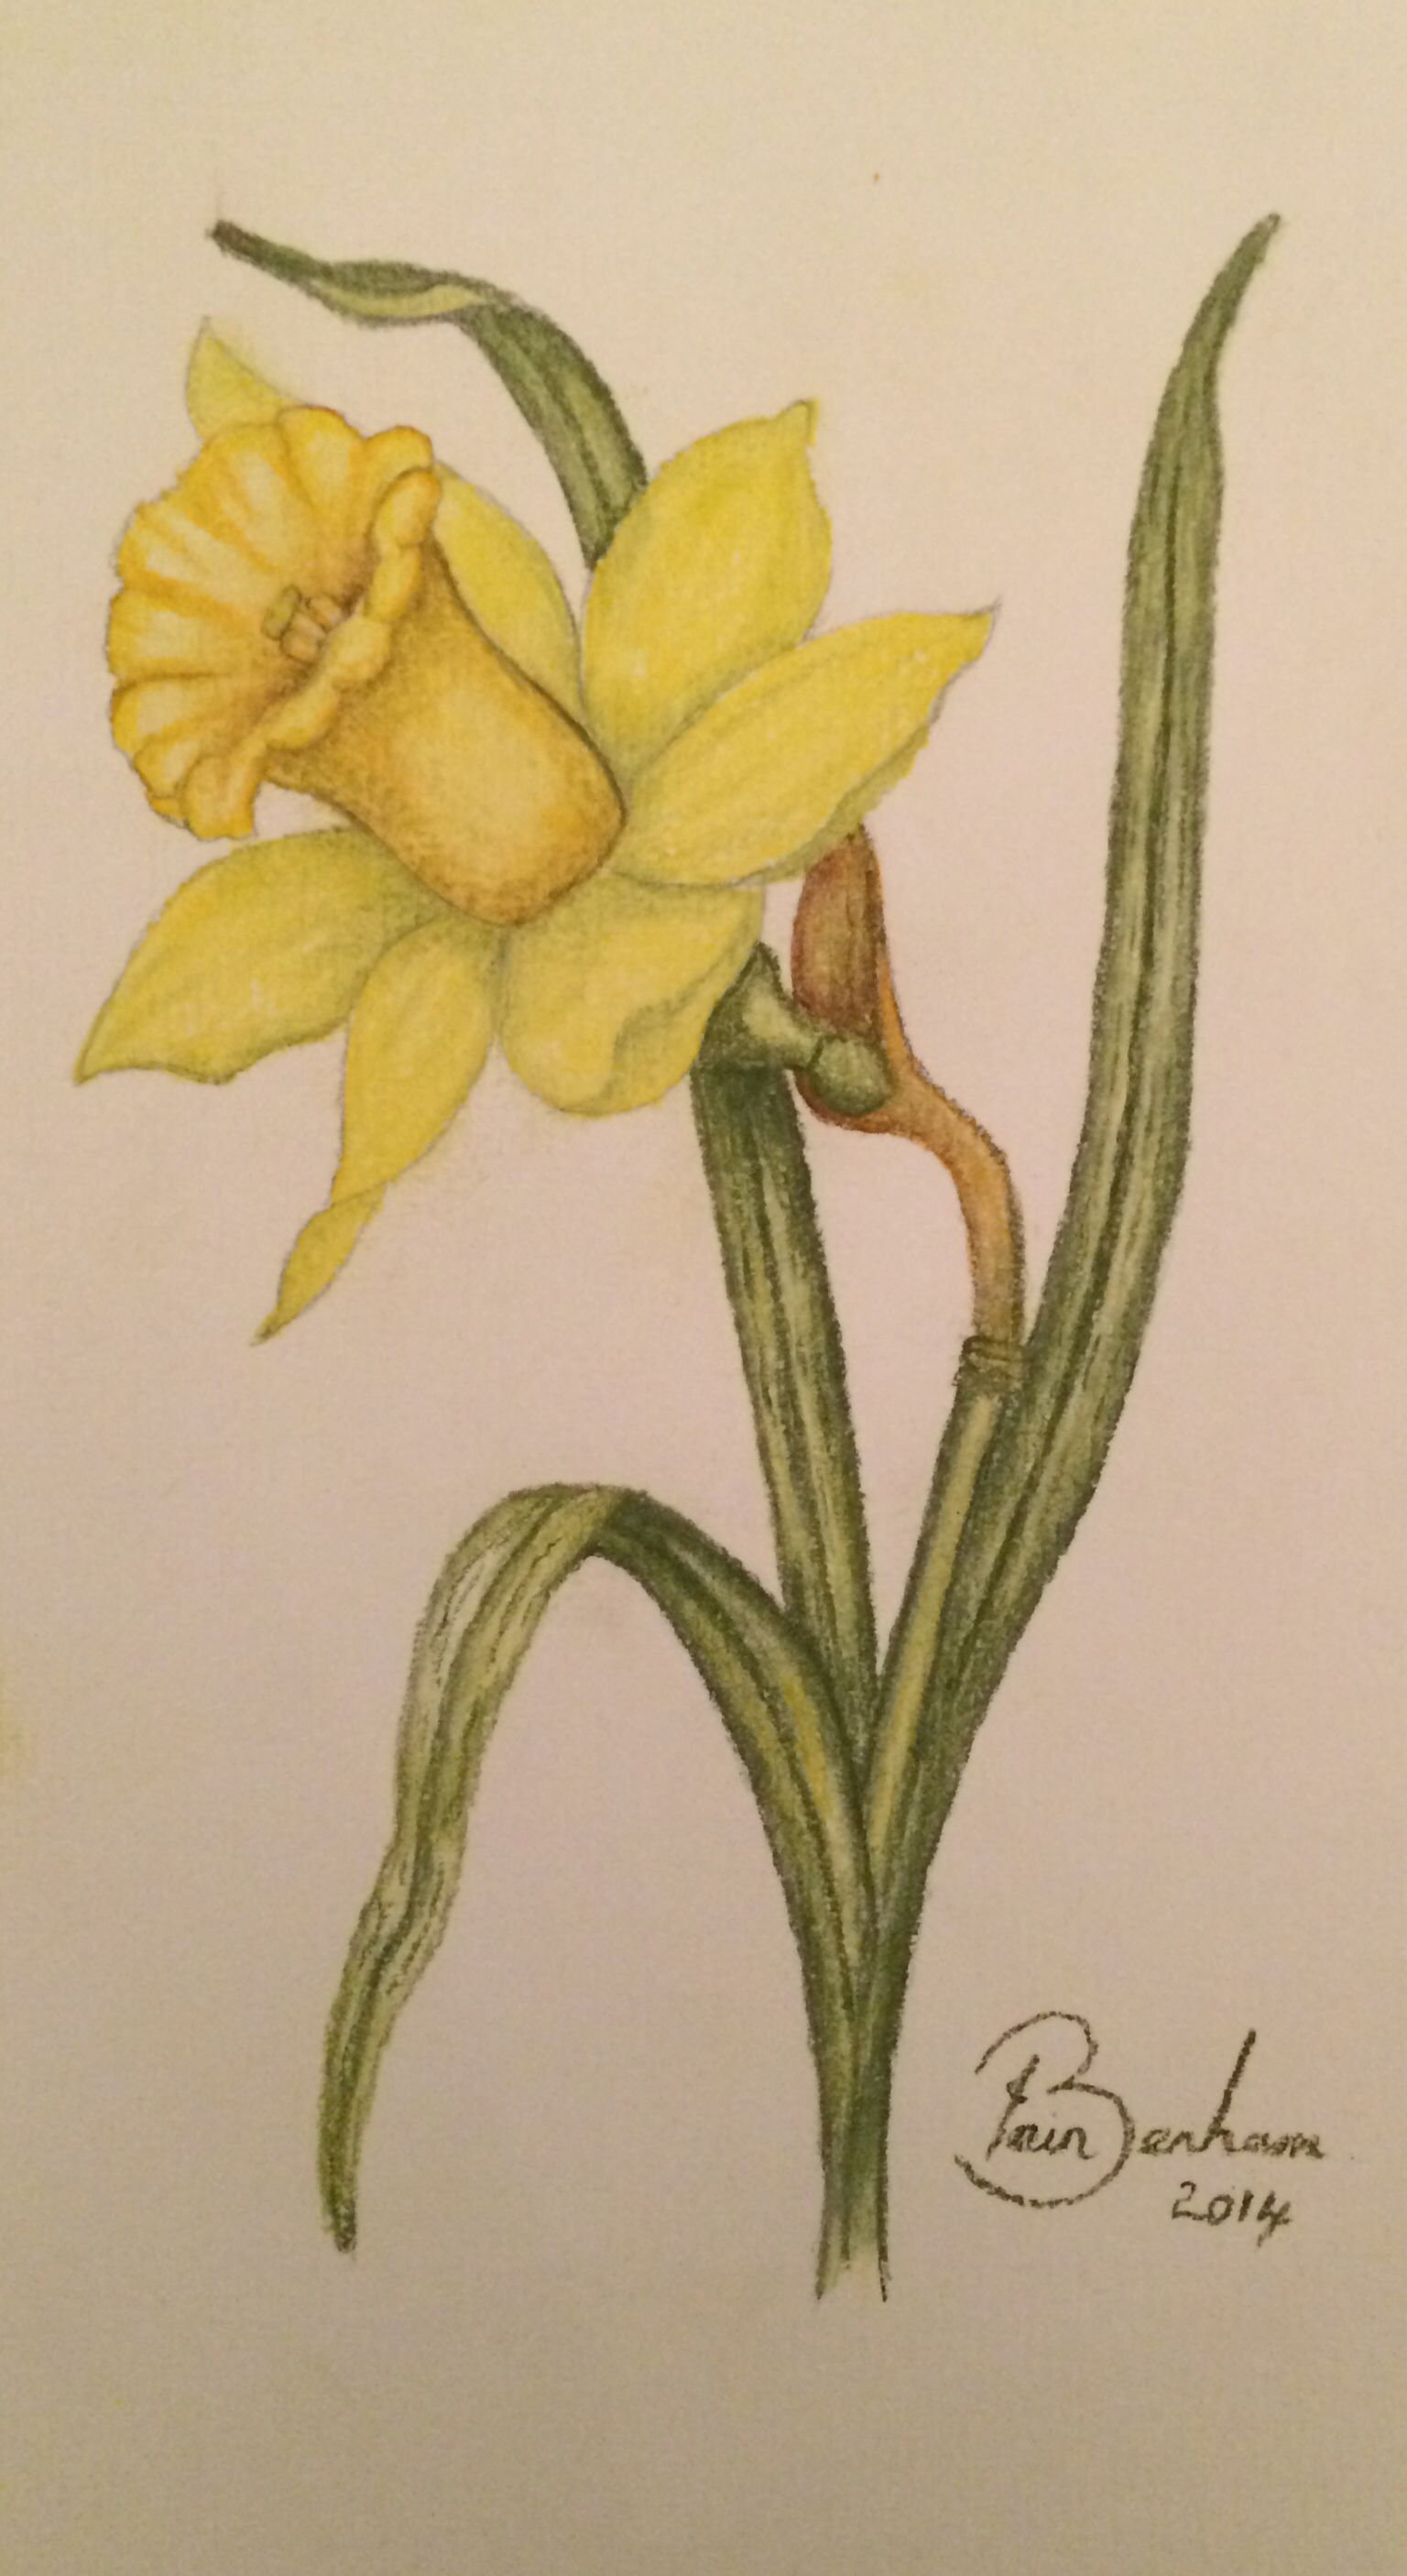 Pastel pencil drawing of a daffodil flower hand crafted